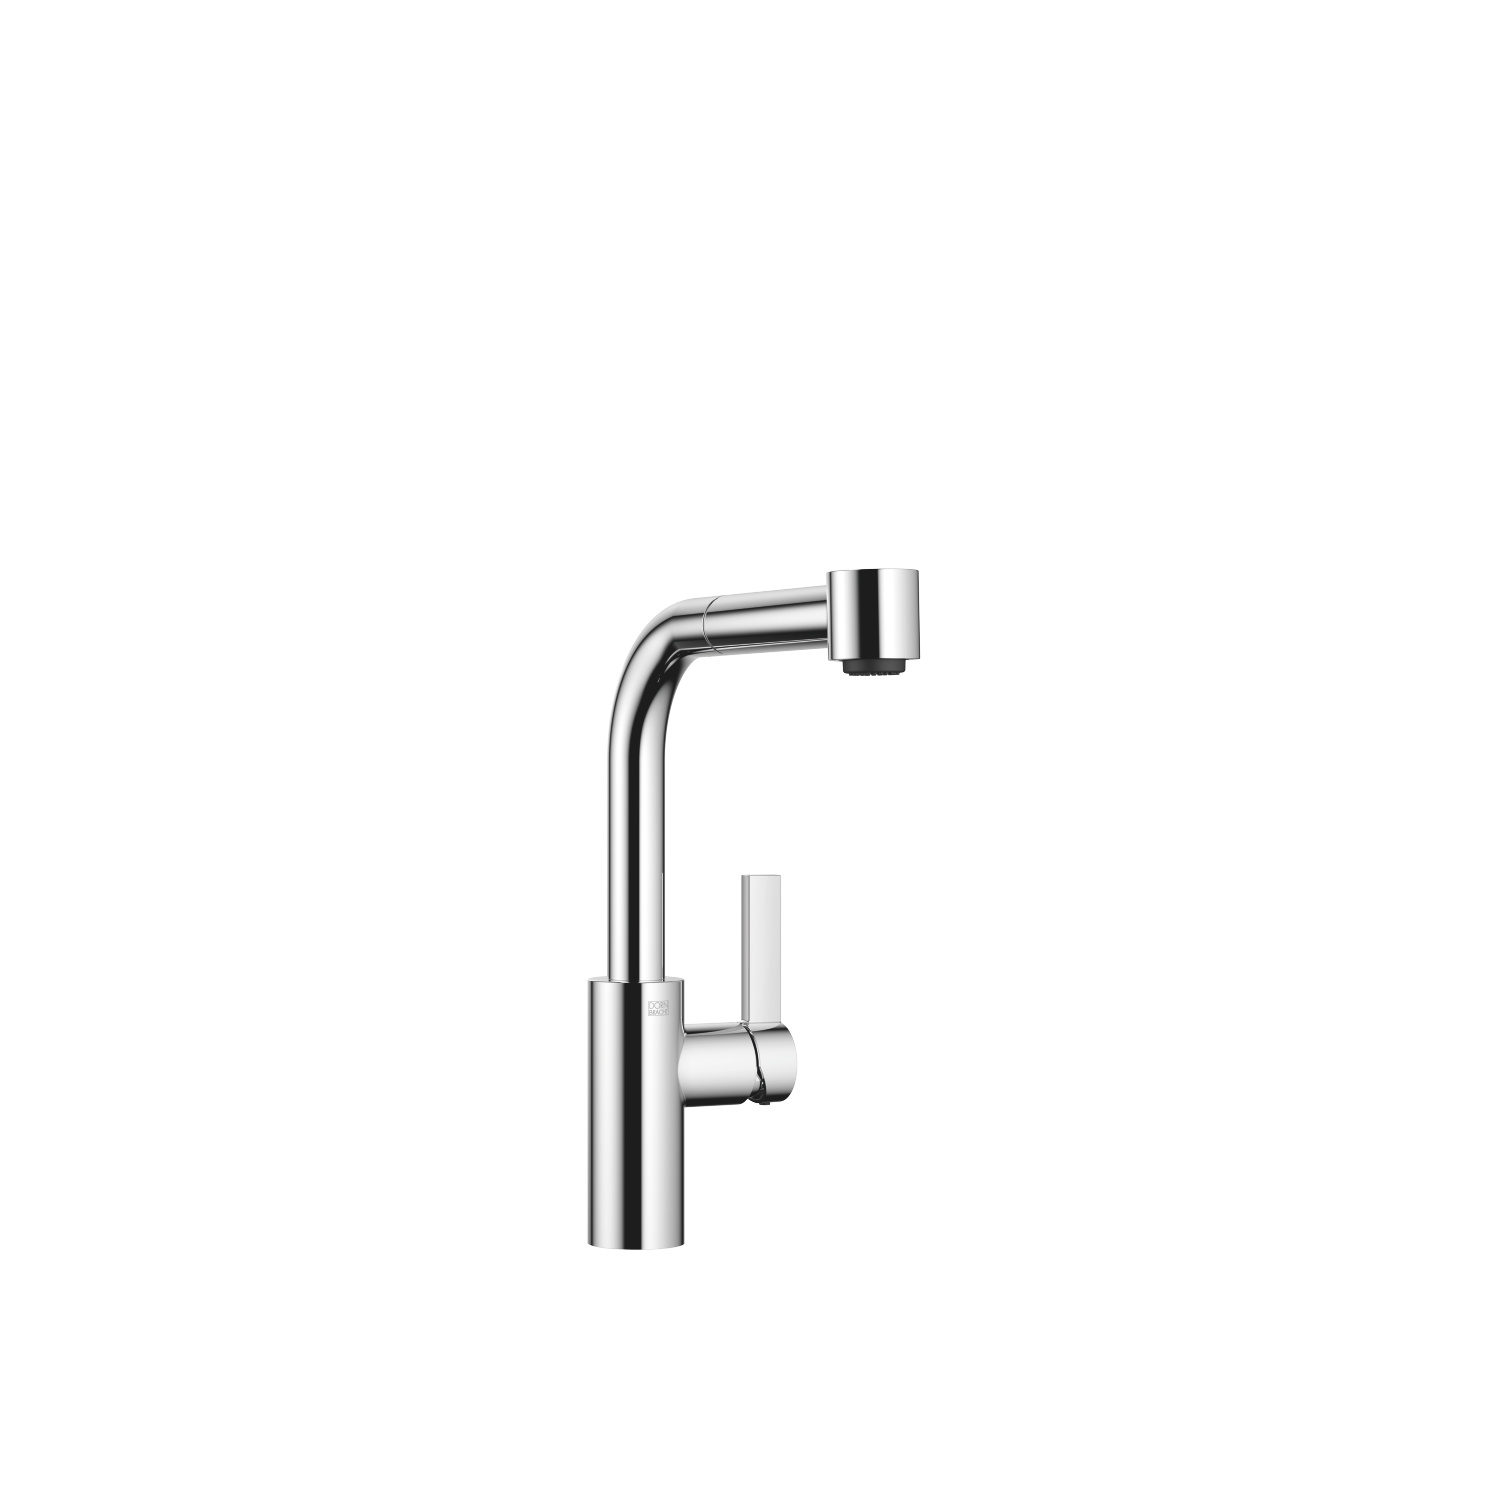 Single-lever mixer Pull-out with spray function - polished chrome